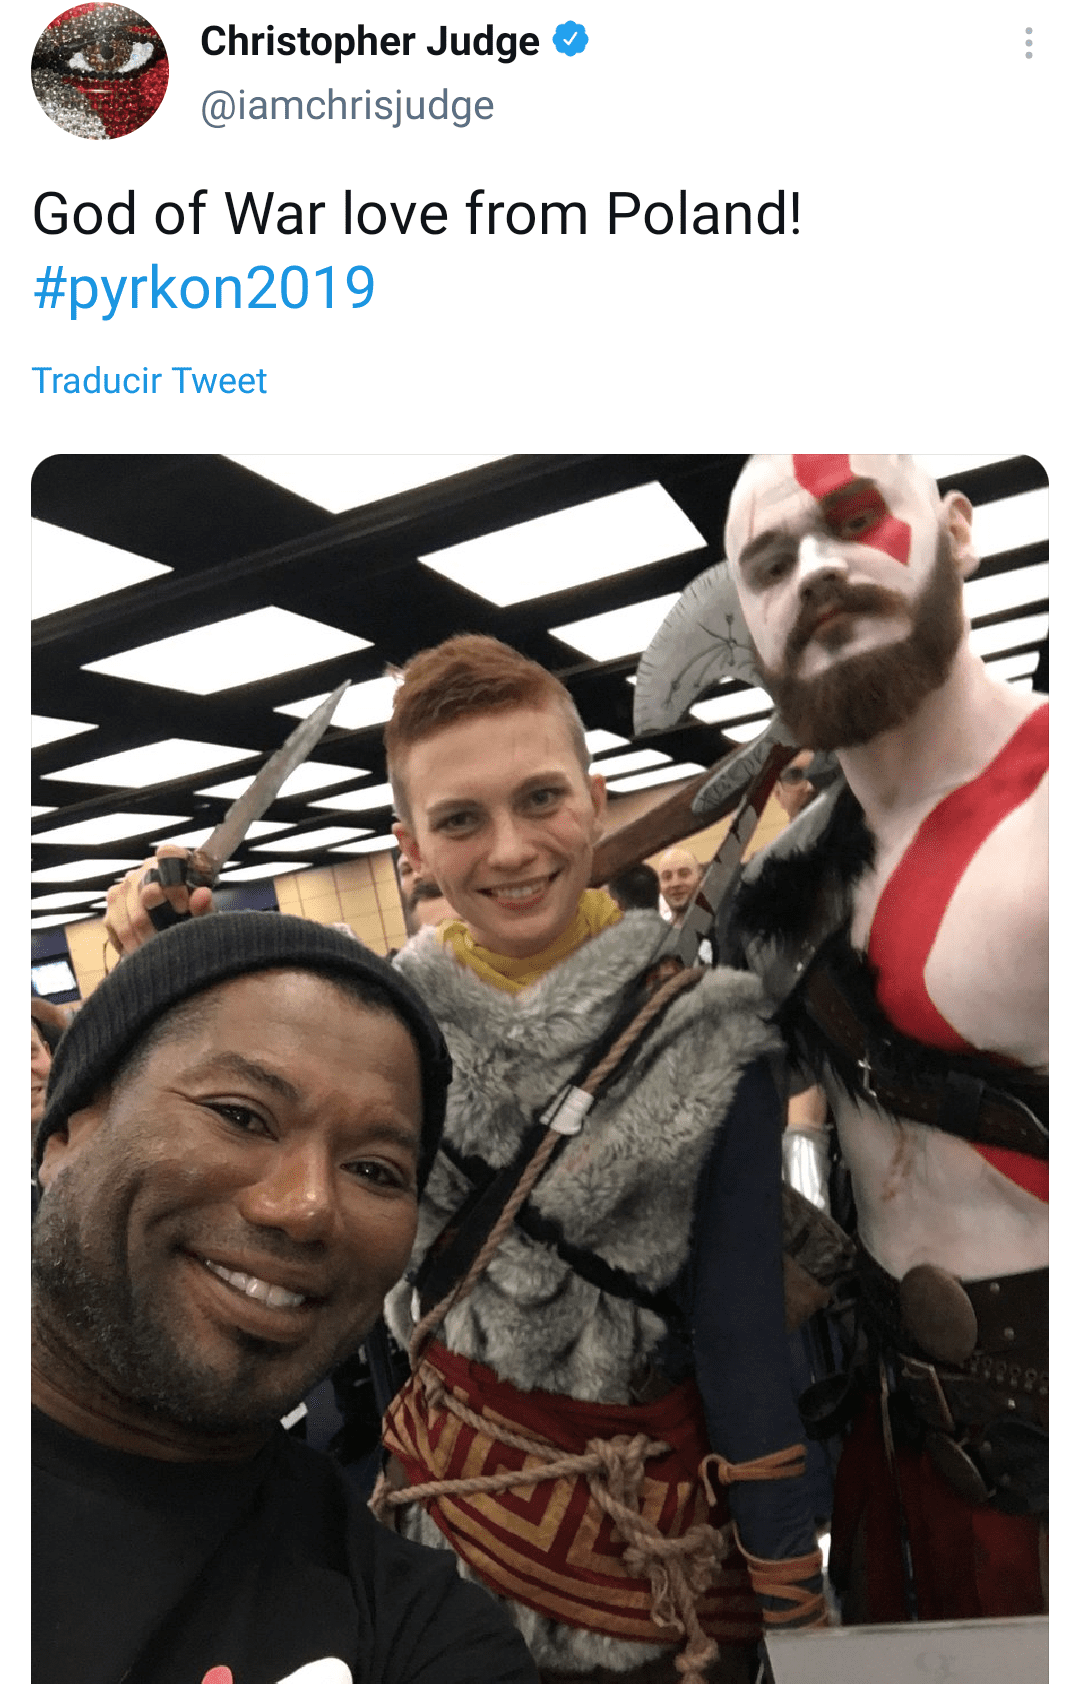 Christopher Judge at an event in Poland   Photo: Twitter/iamchrisjudge